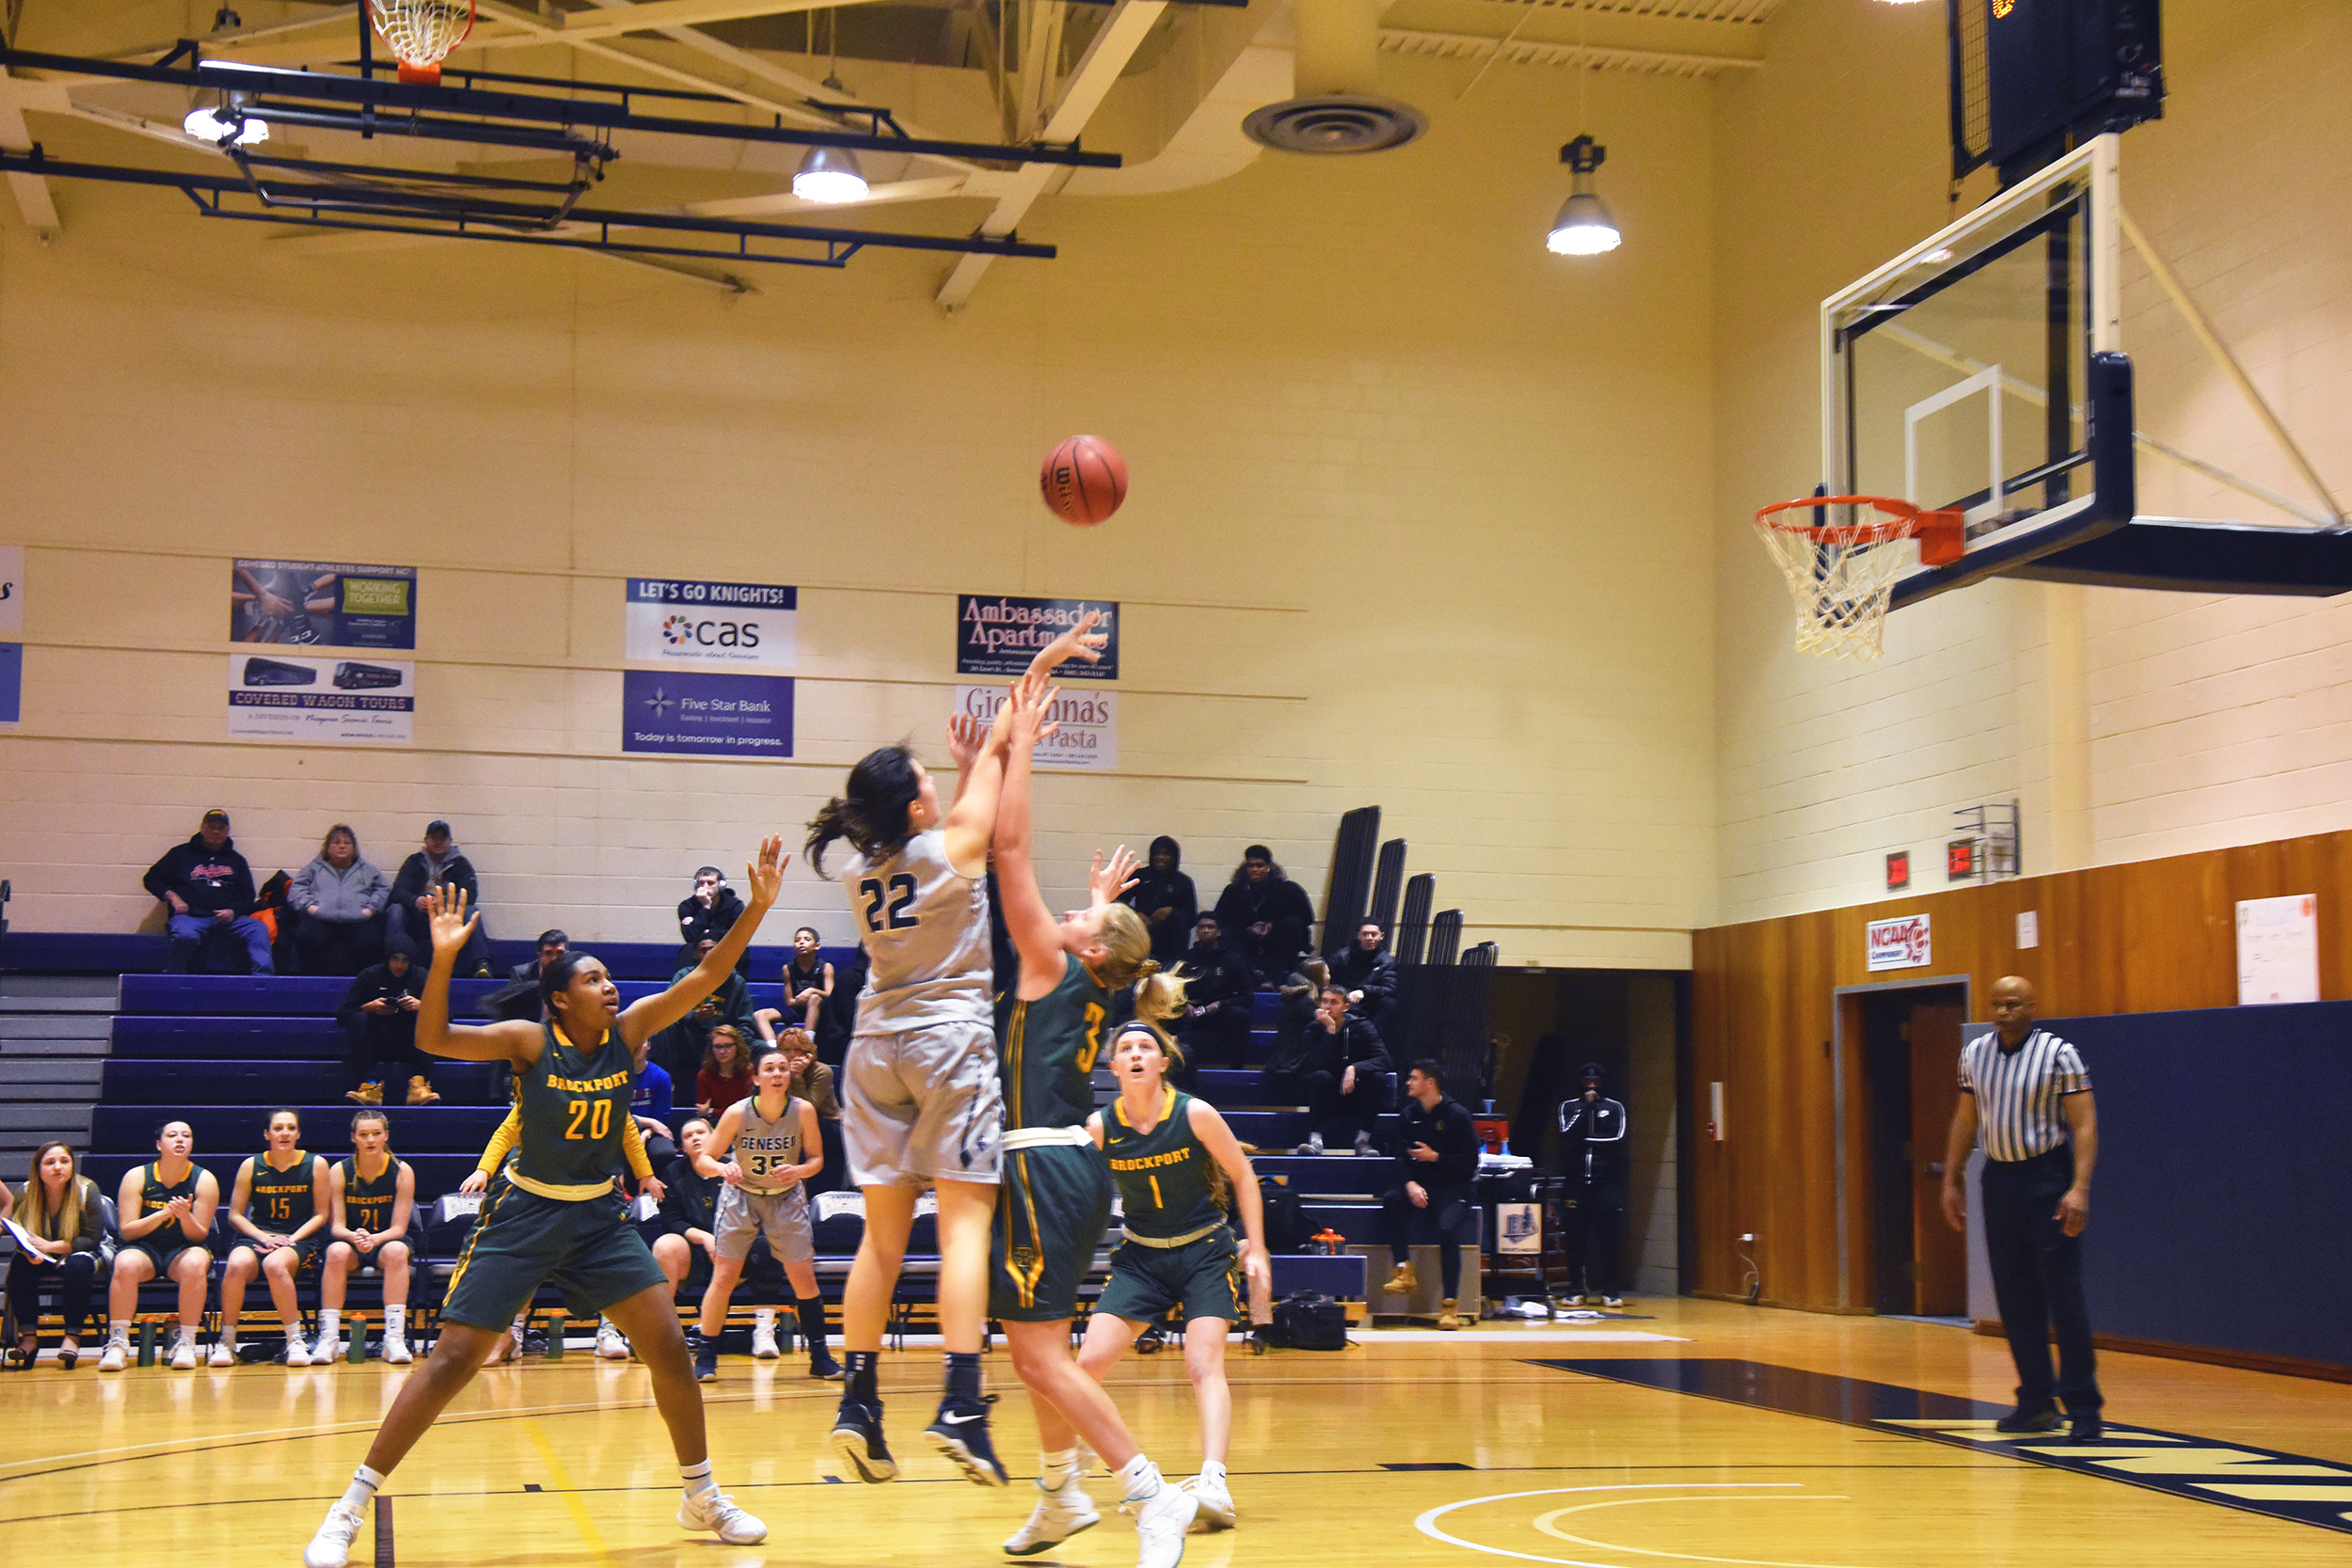 Sophomore forward Kerrin Montgomery shoots a jumpshot in a game against SUNY Brockport on Satuday Feb. 9. Montgomery scored 10 points in the contest (Josie Kwan/assoc. Photo editor).